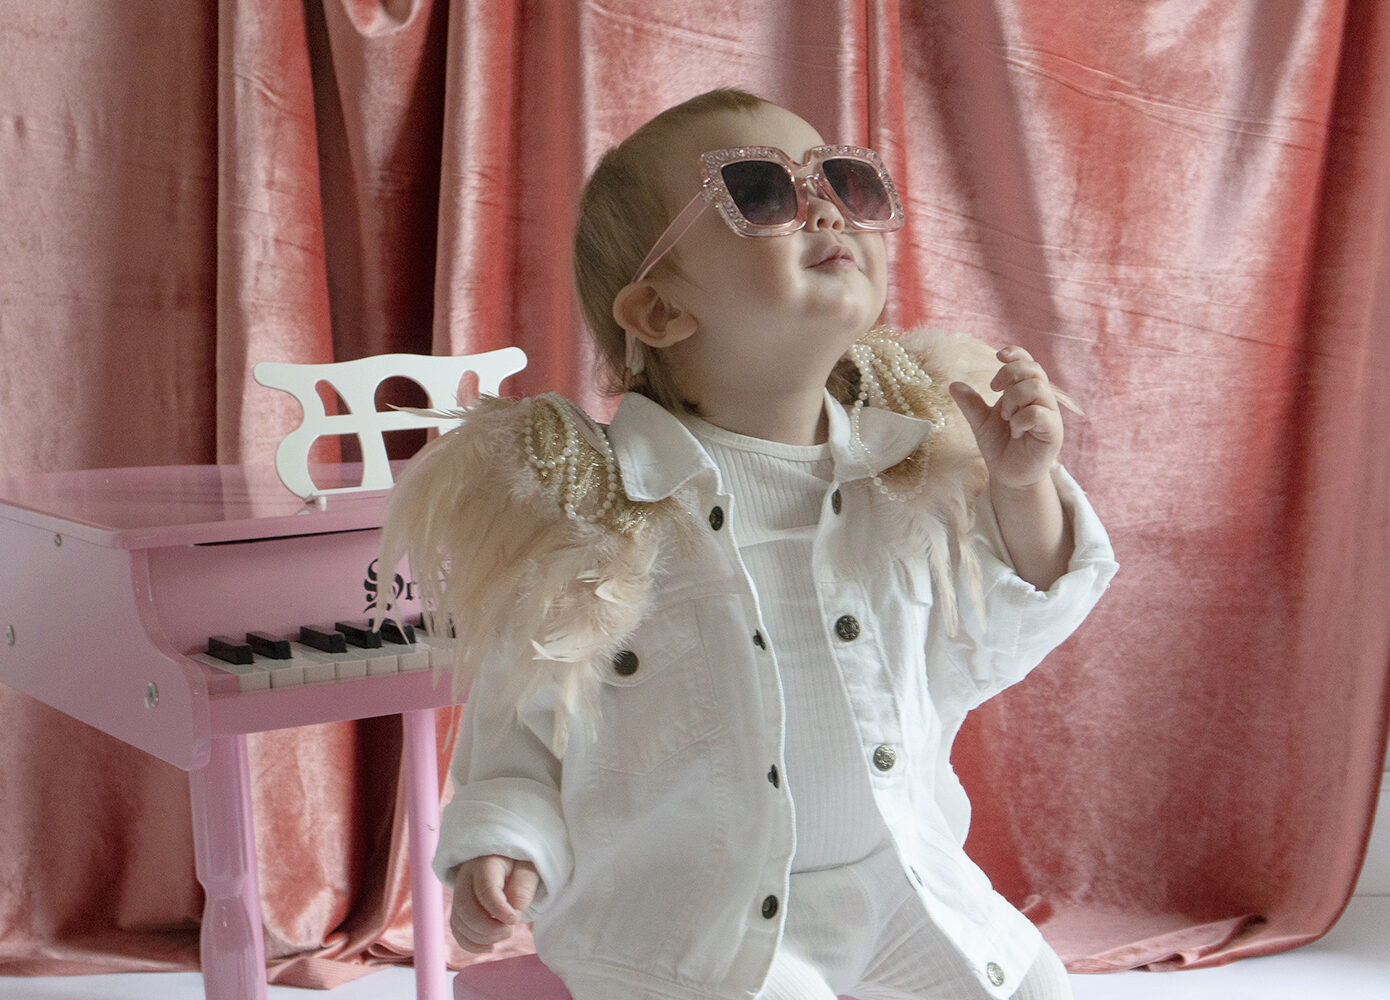 baby in glam sunglasses dressed as Elton John at a piano